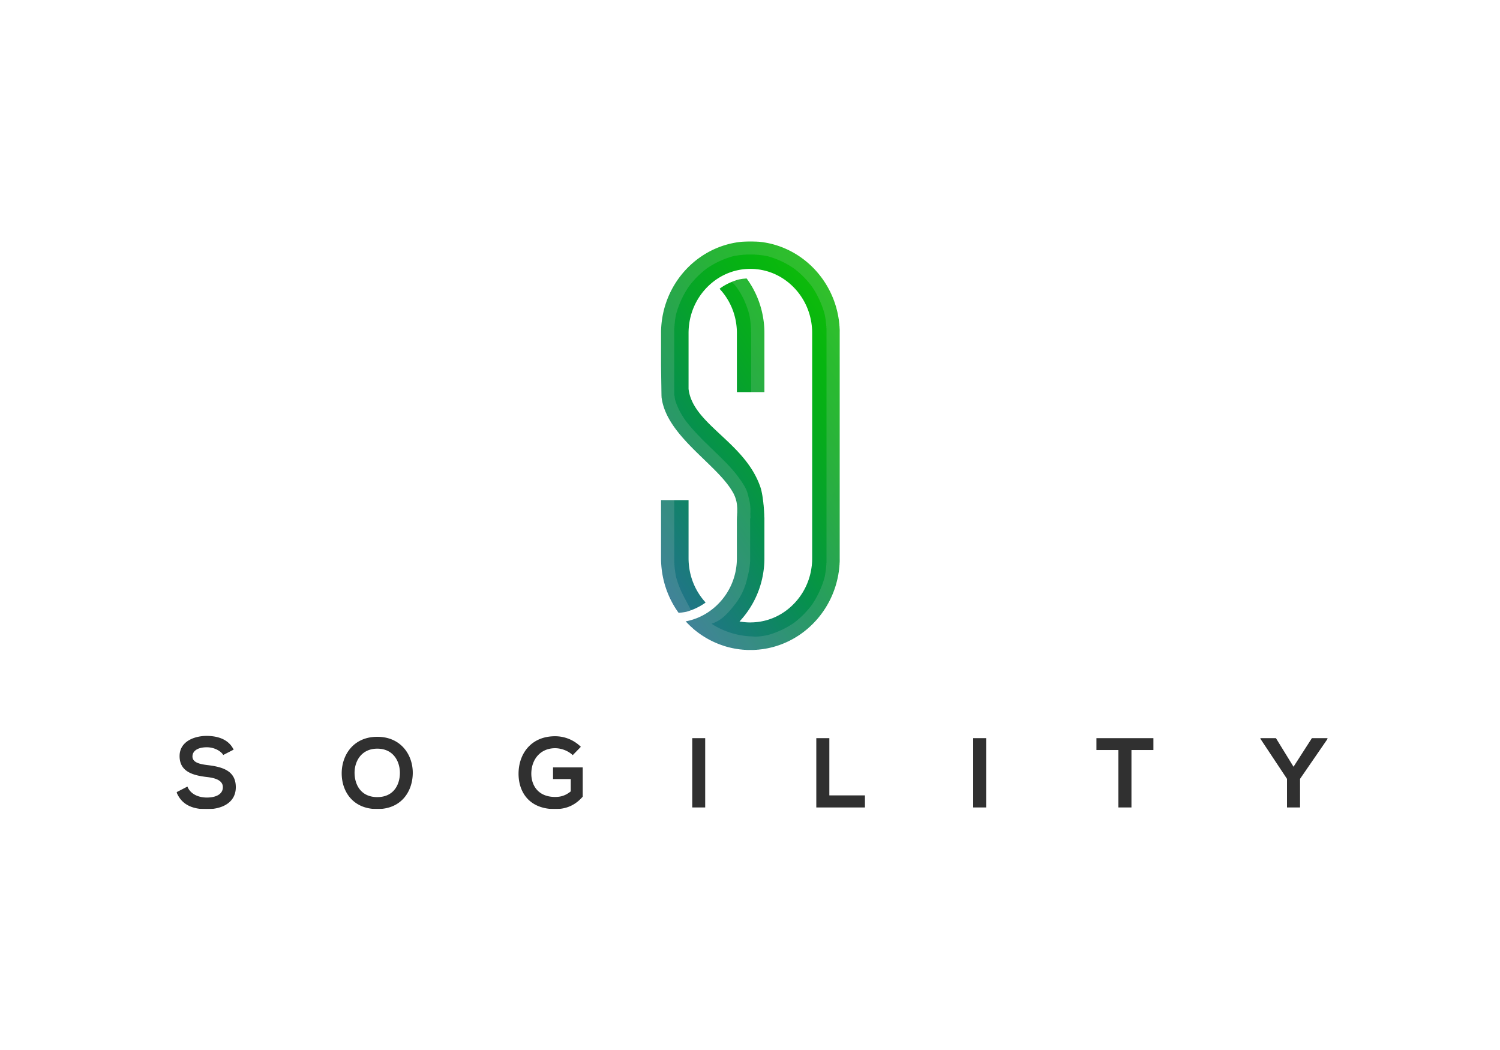 Sogility